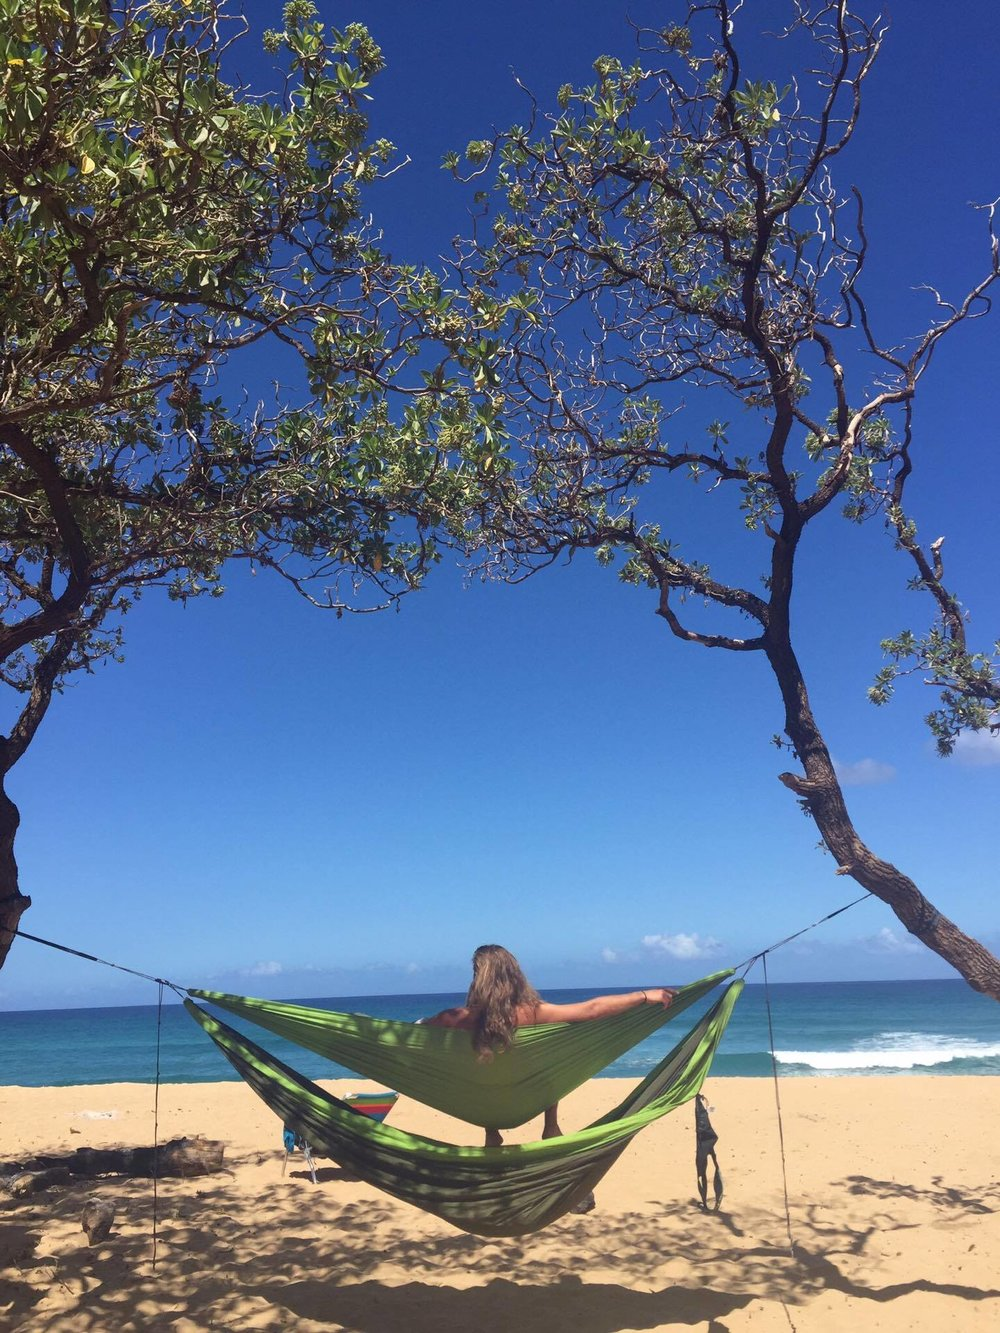 The perfect hammocking spot on the beach!